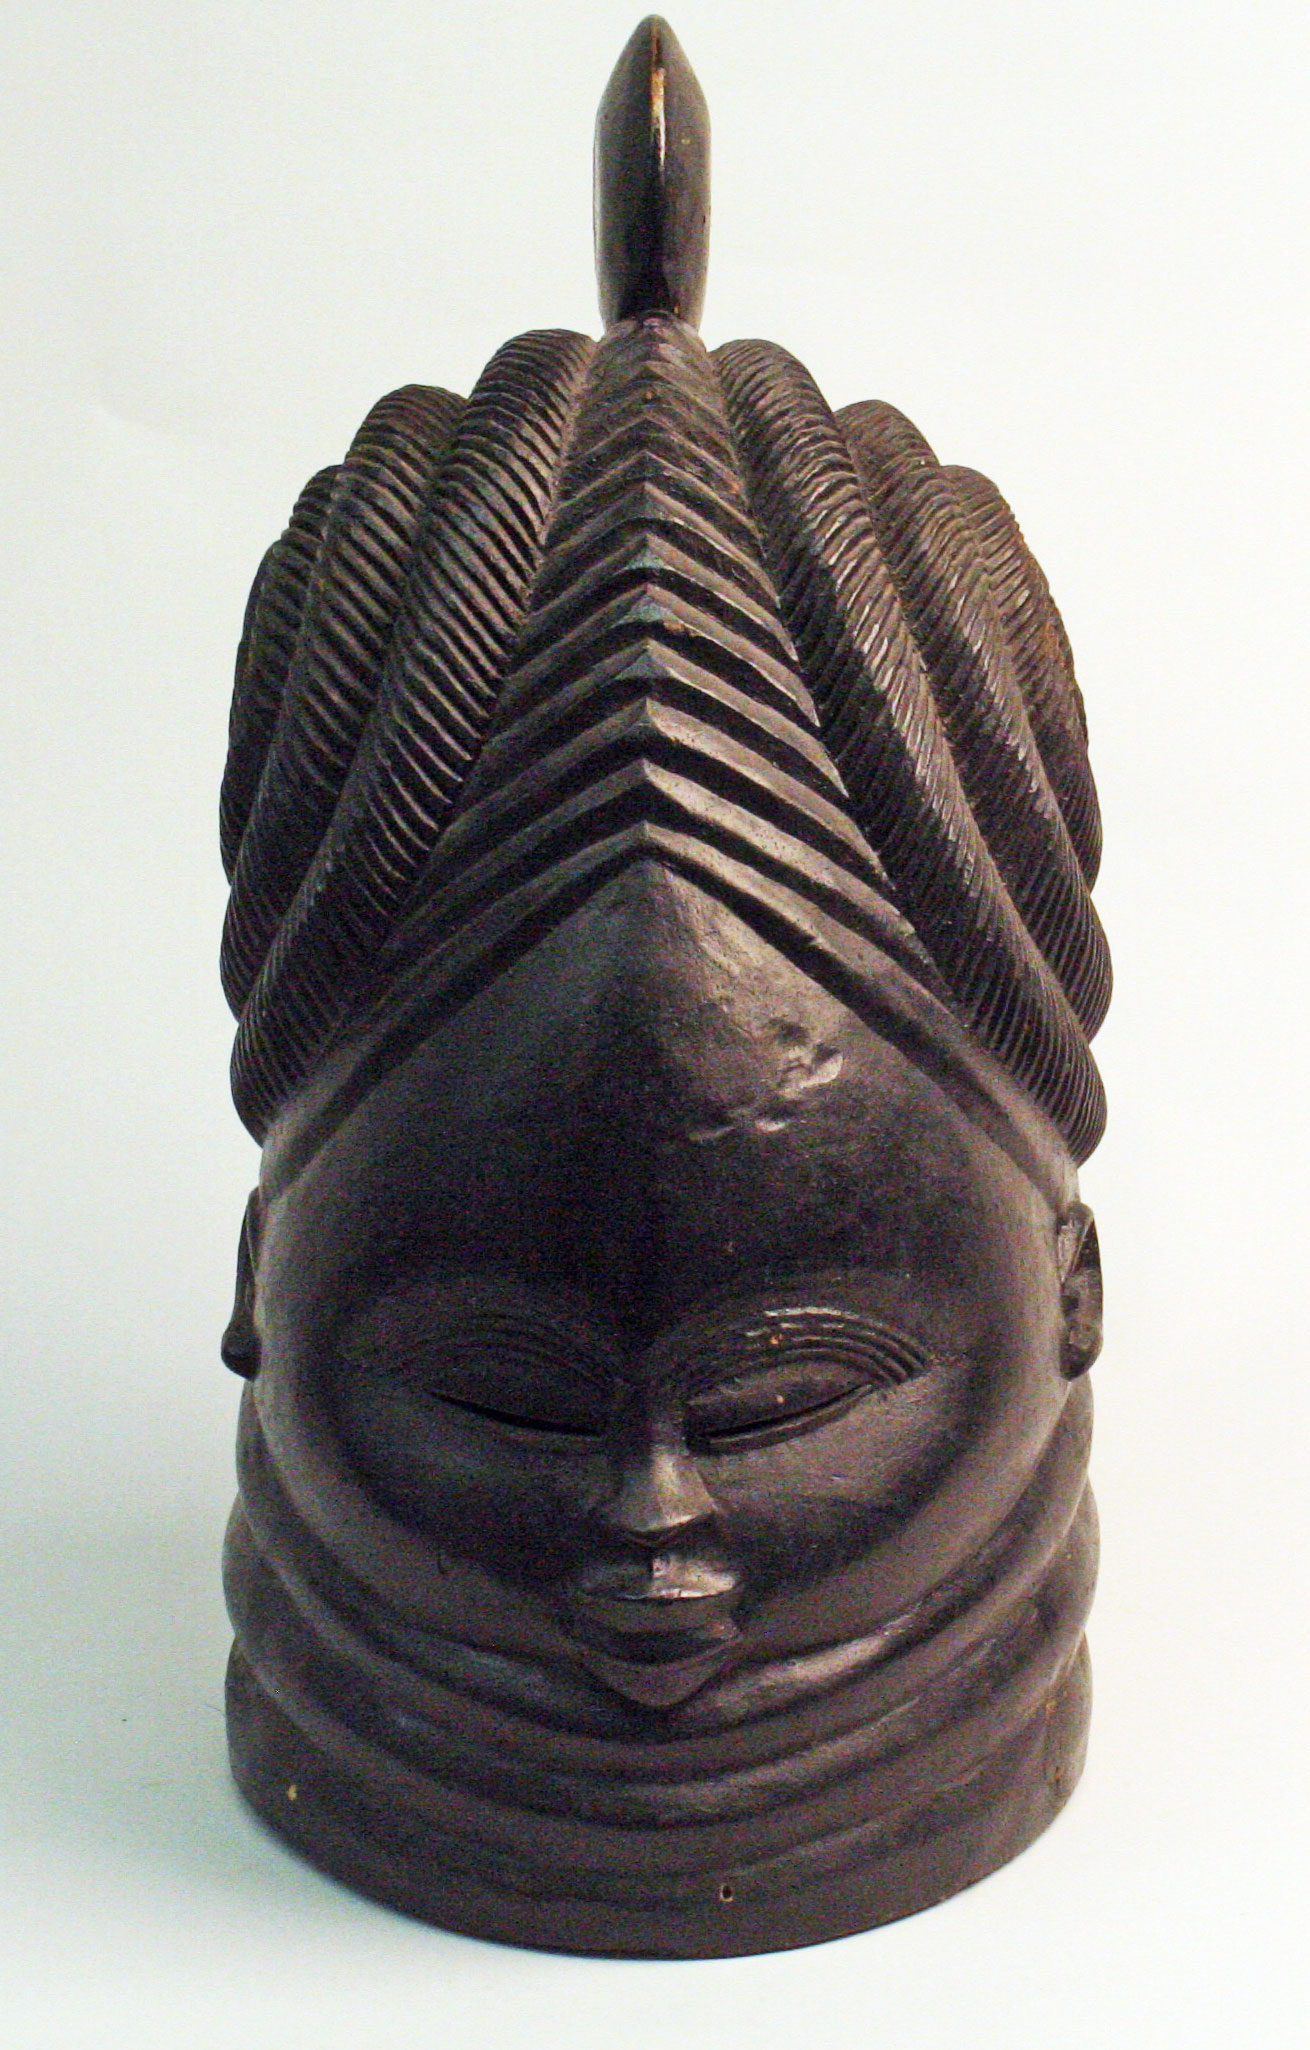 A woman's mask from West Africa